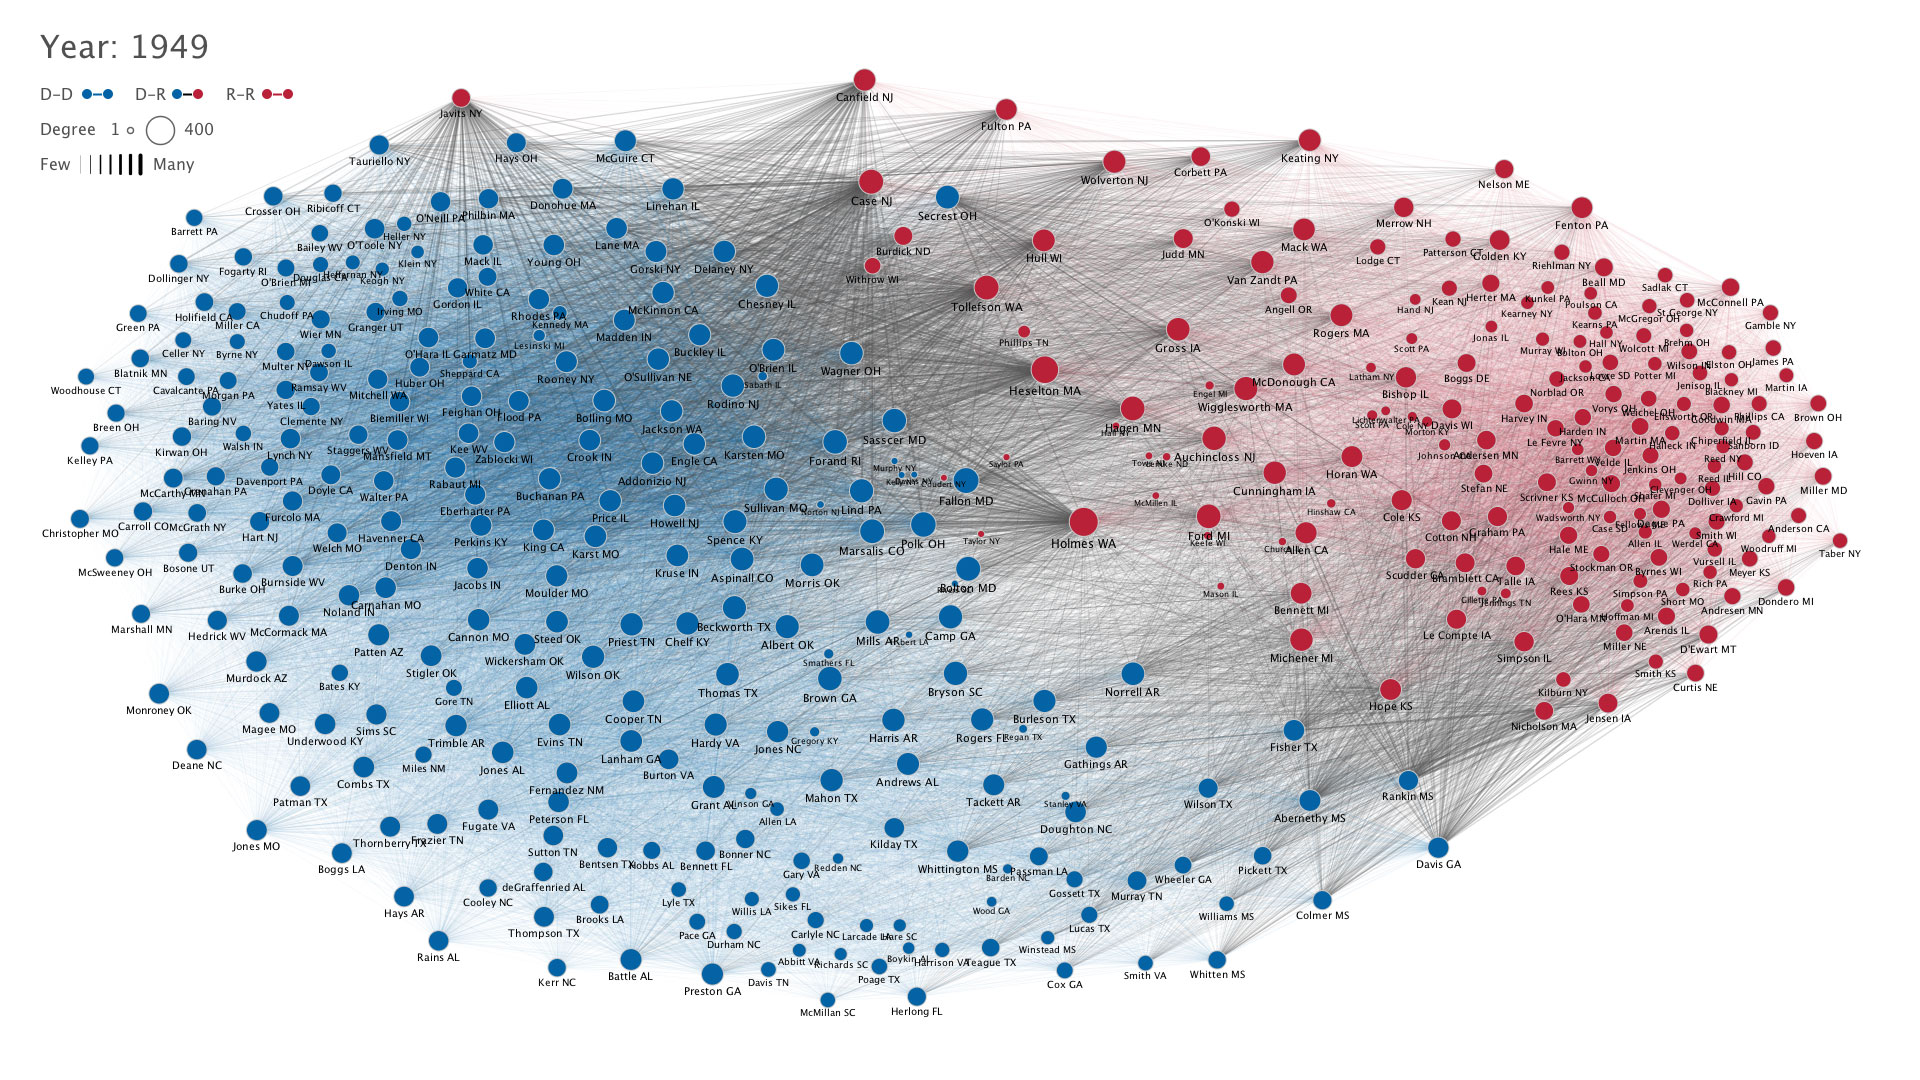 The Rise of Partisanship in the US House of Representatives